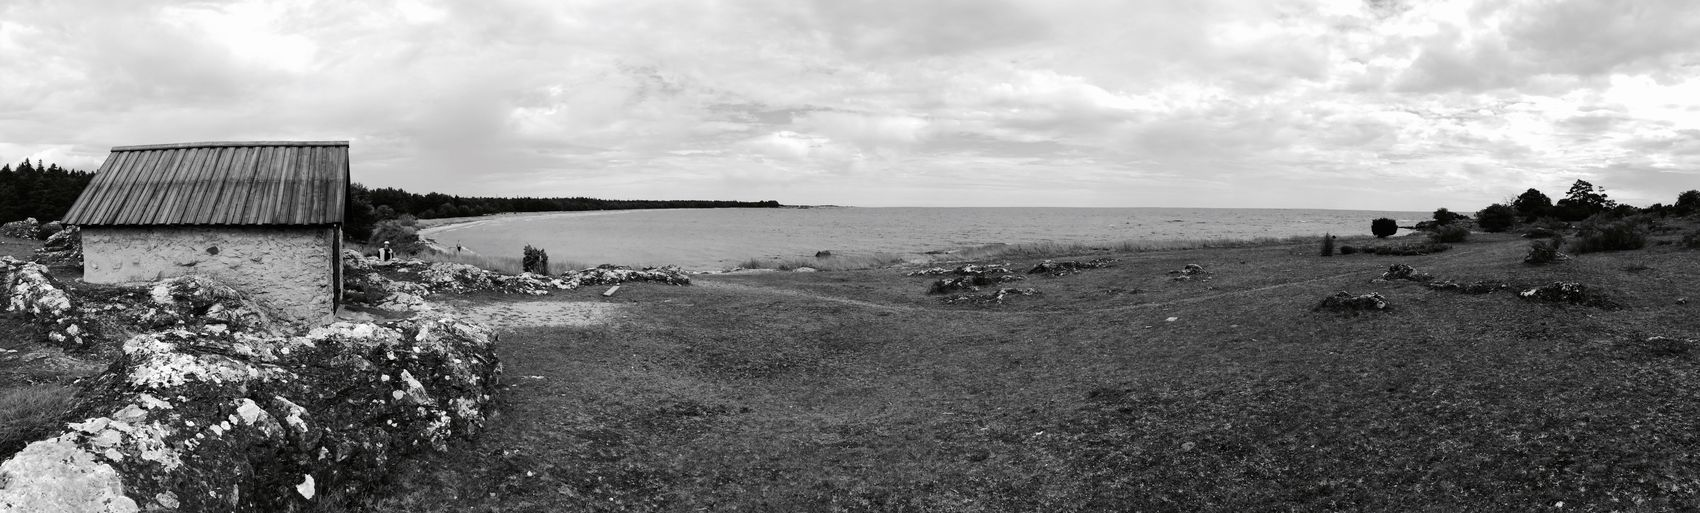 Home The KIOMI Collection IPhoneography Darkness And Light Melancholy Sea Rocks Island Gotland Eye4black&white  Blackandwhite Photography Panorama